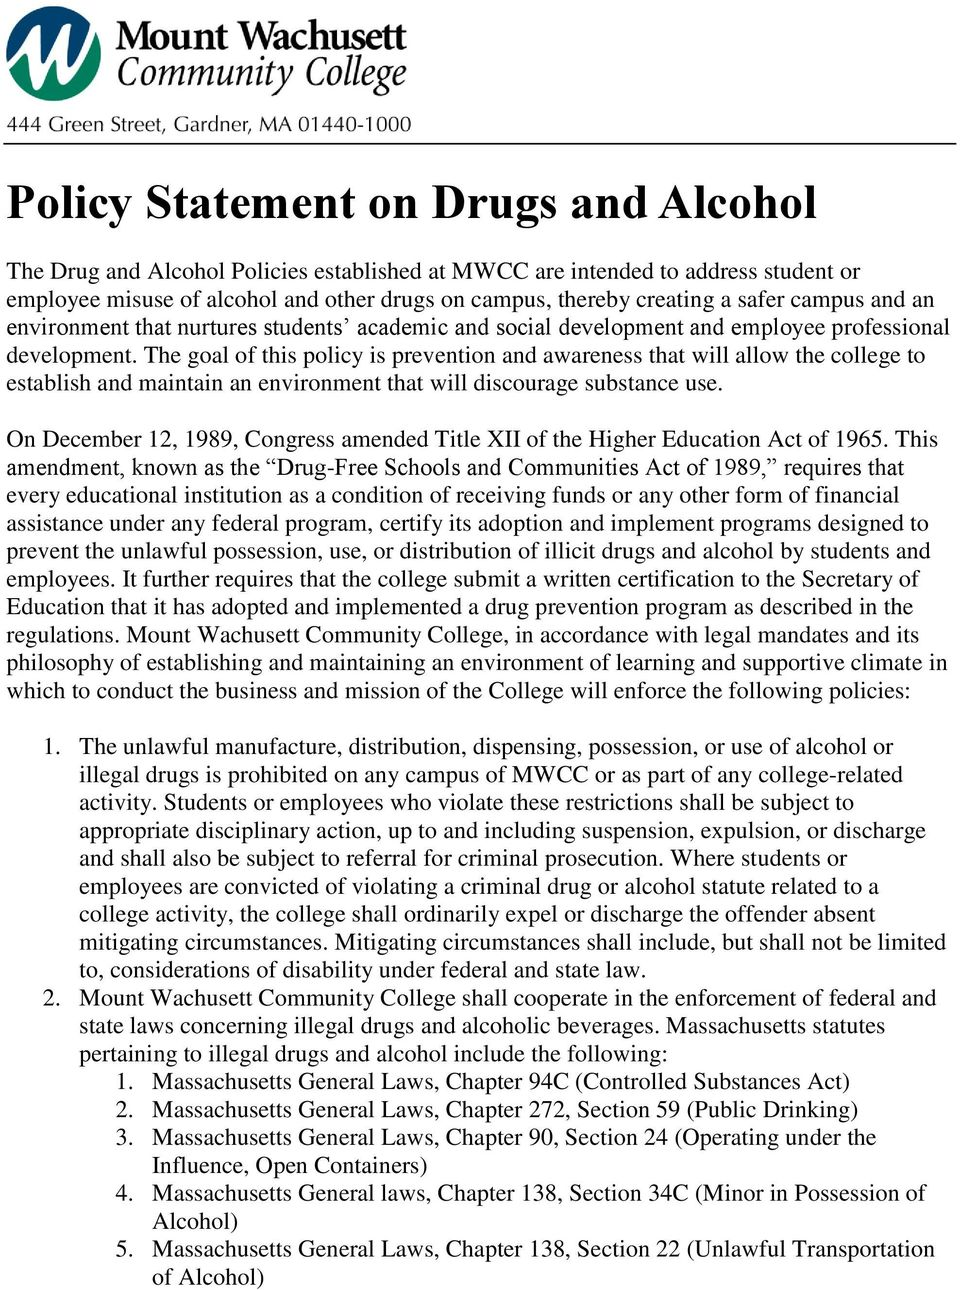 The goal of this policy is prevention and awareness that will allow the college to establish and maintain an environment that will discourage substance use.